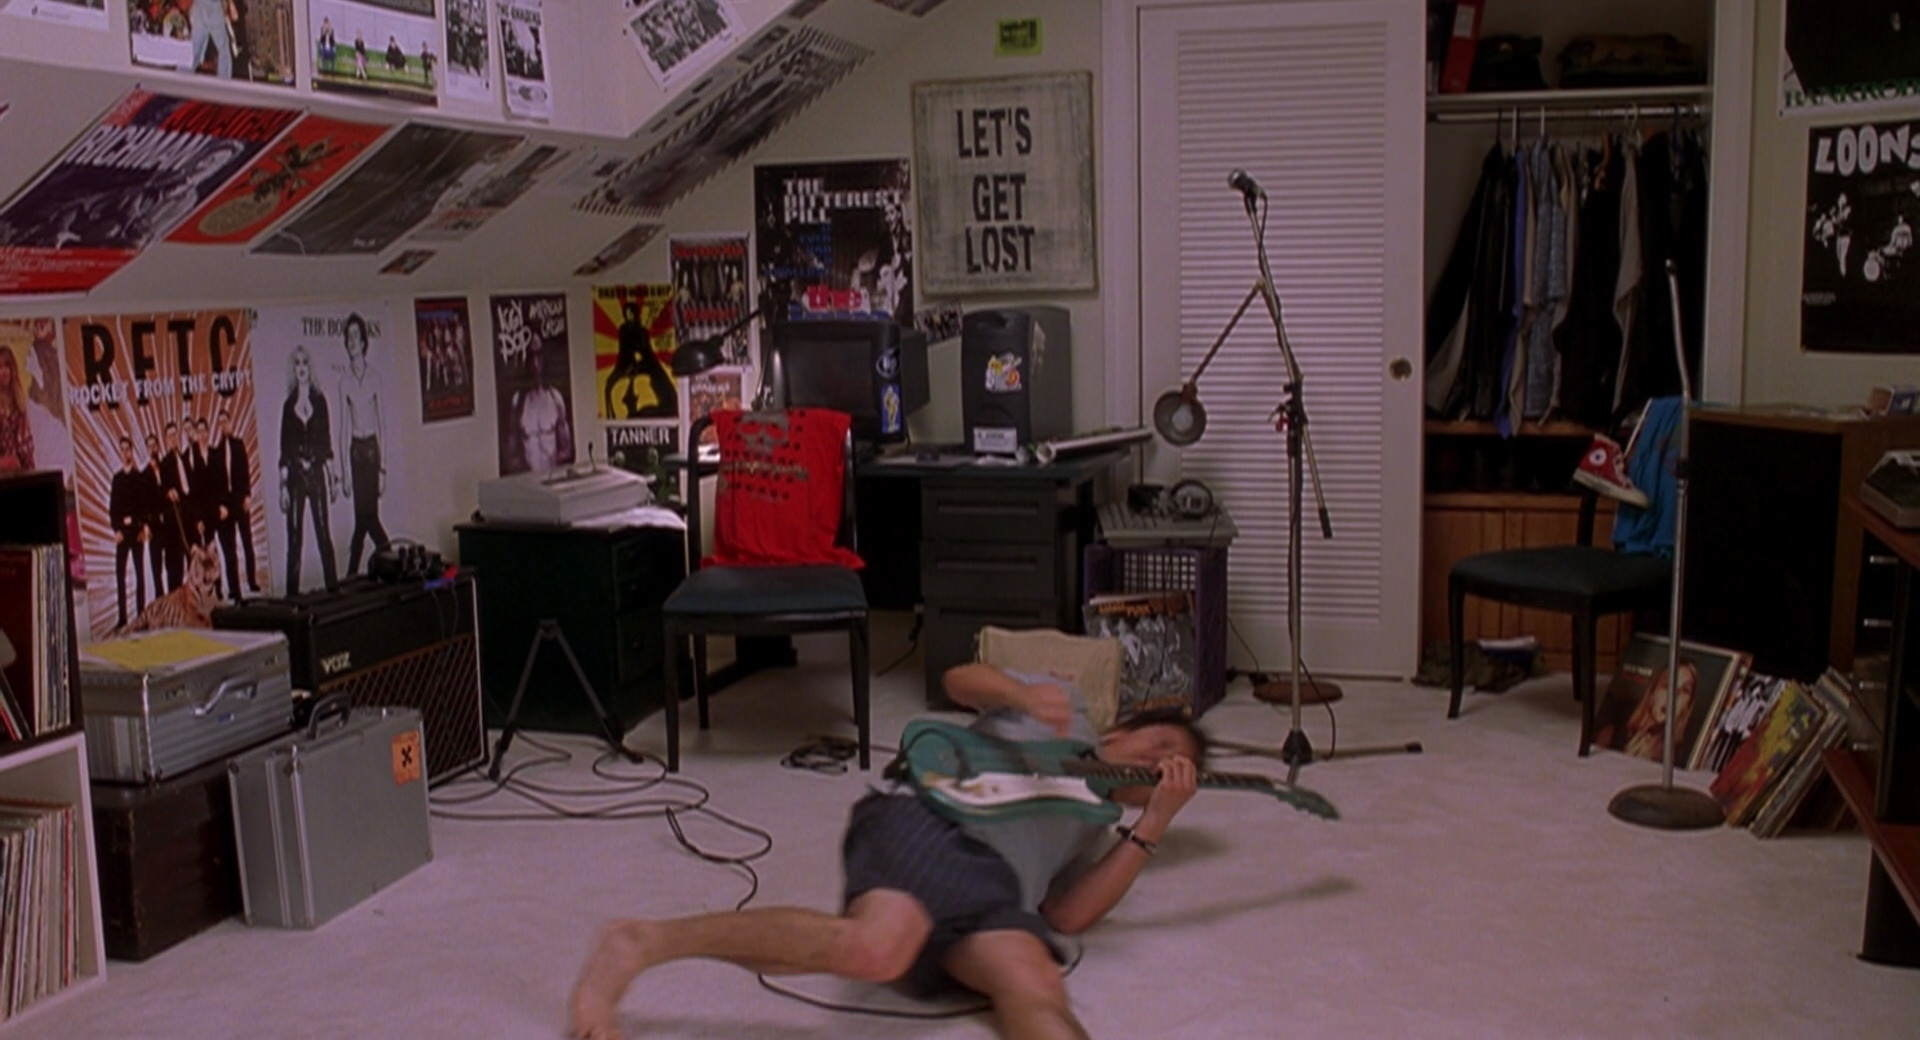 Cliff plays guitar on the floor.